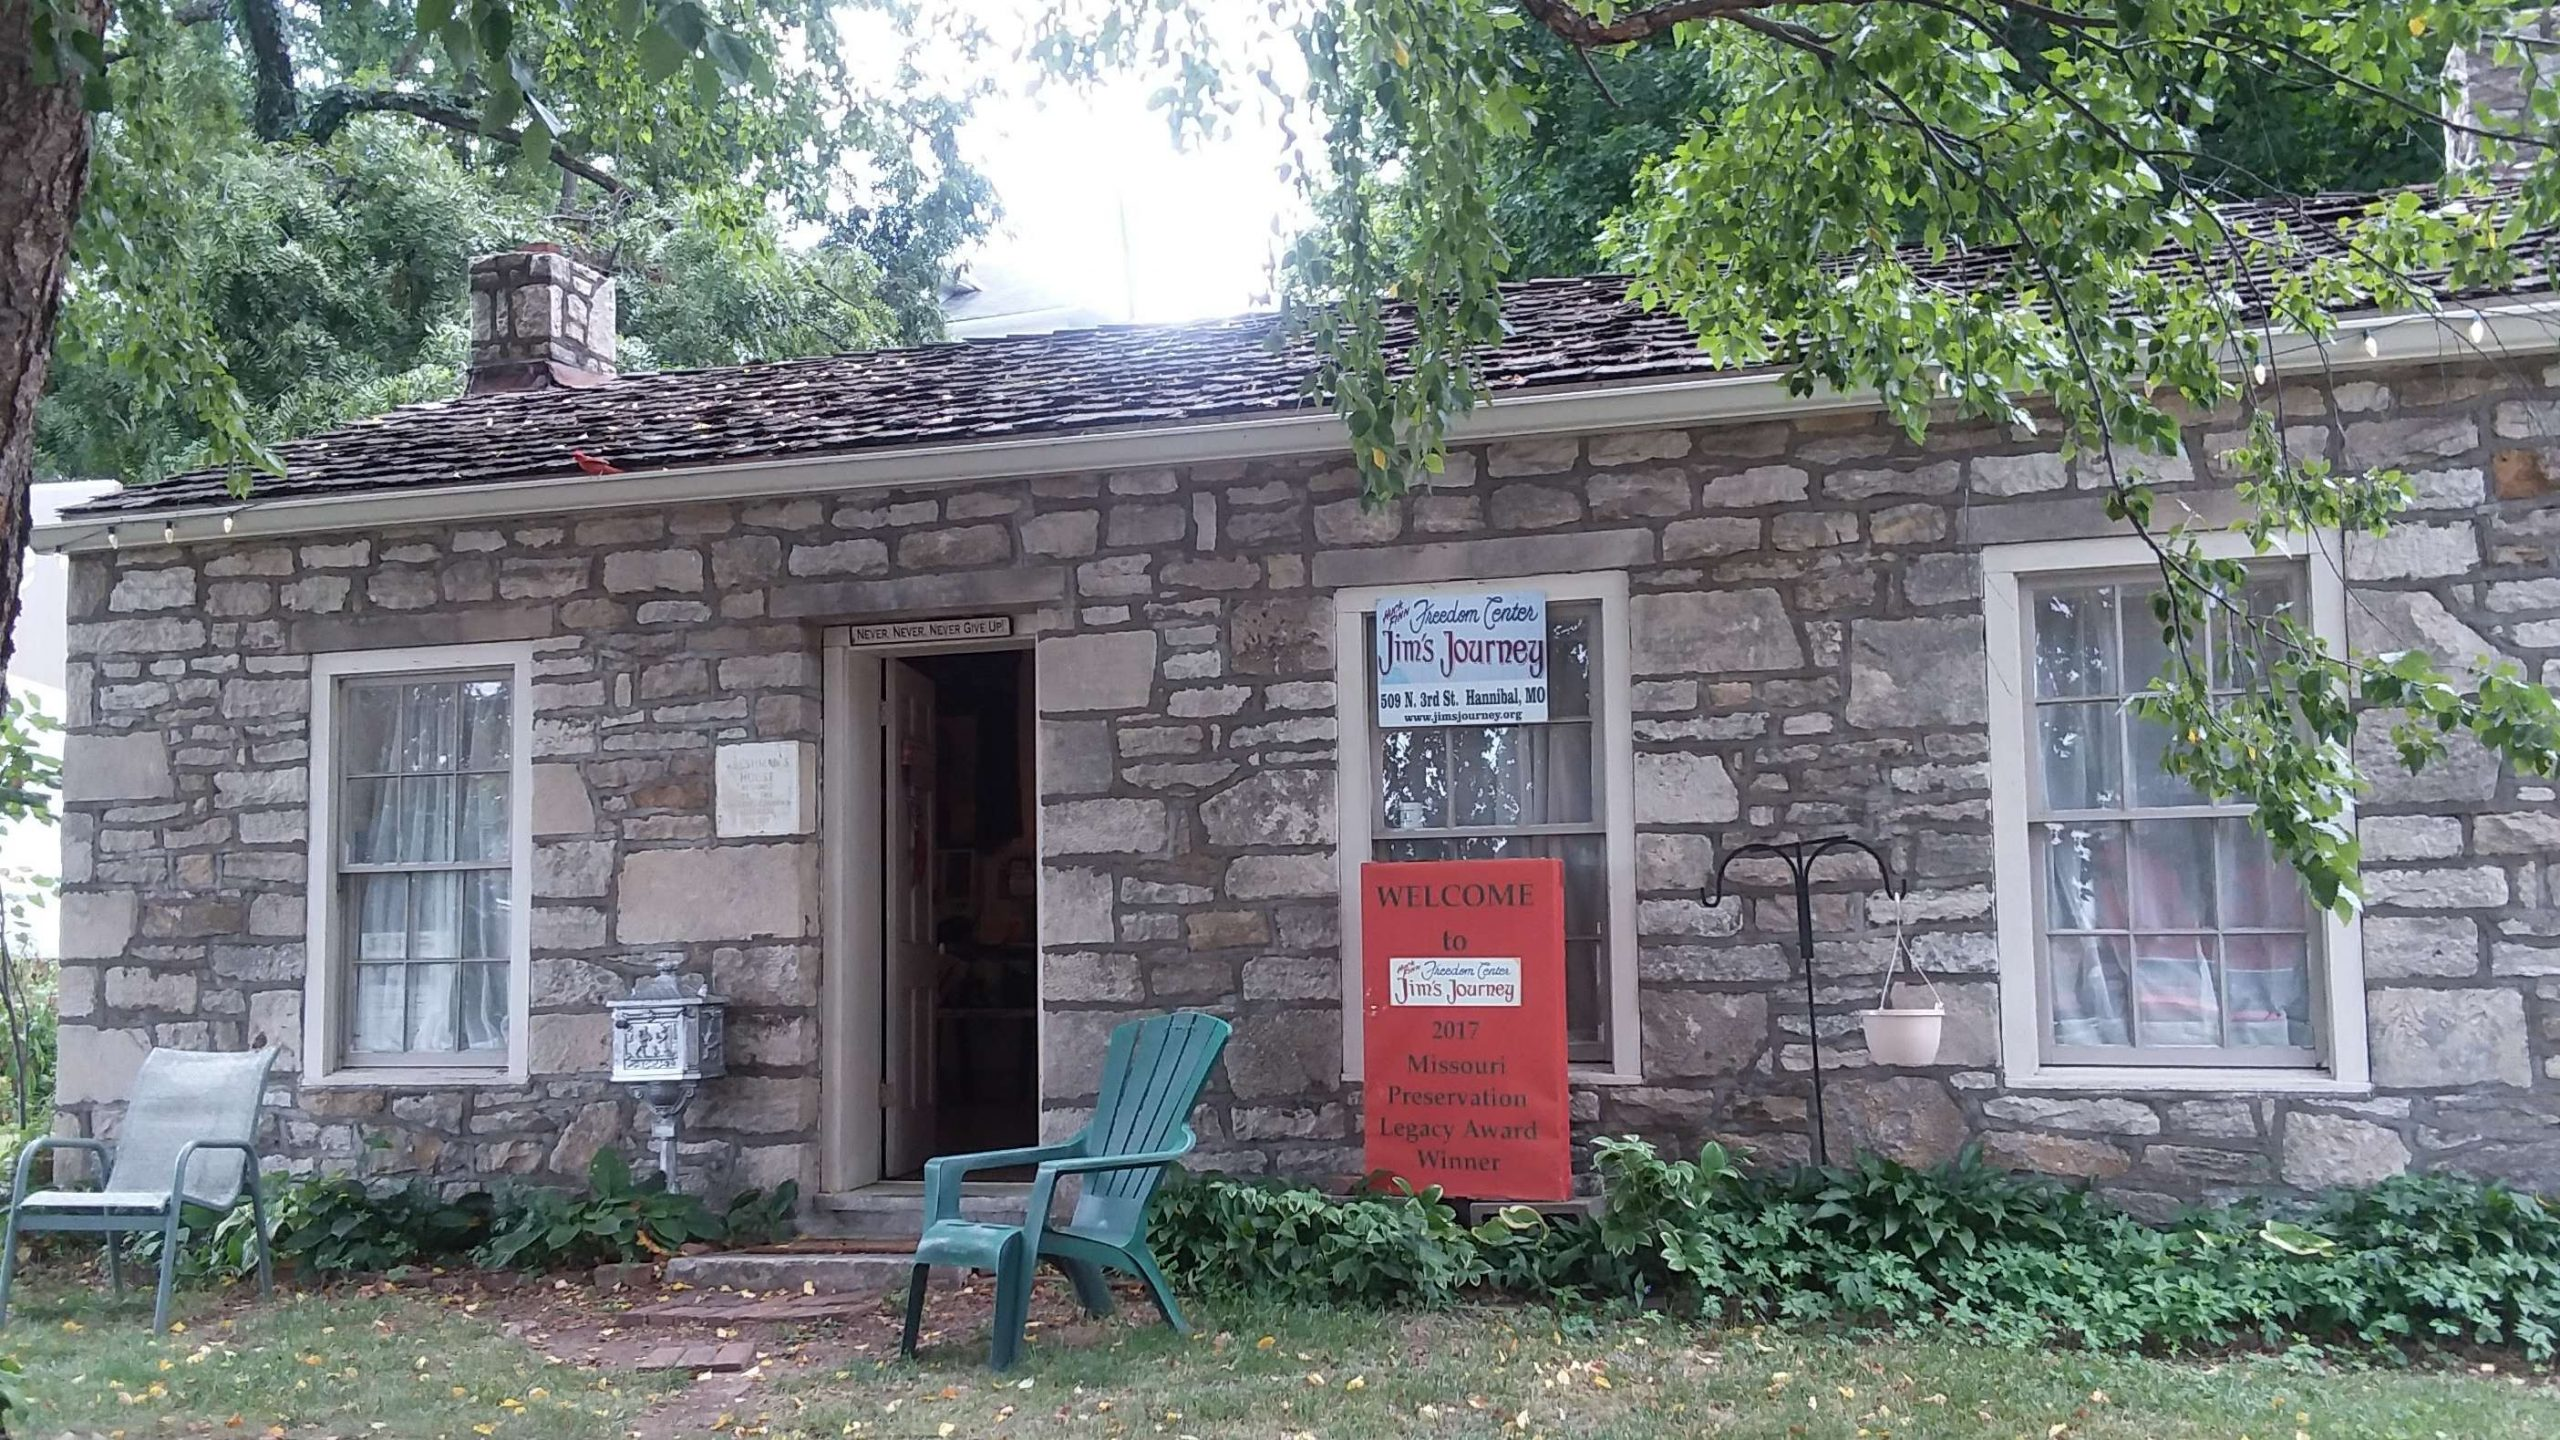 Jim's Journey: The Huck Finn Freedom Center in Hannibal, Missouri is an affiliate museum of the American Writers Museum in Chicago, Illinois